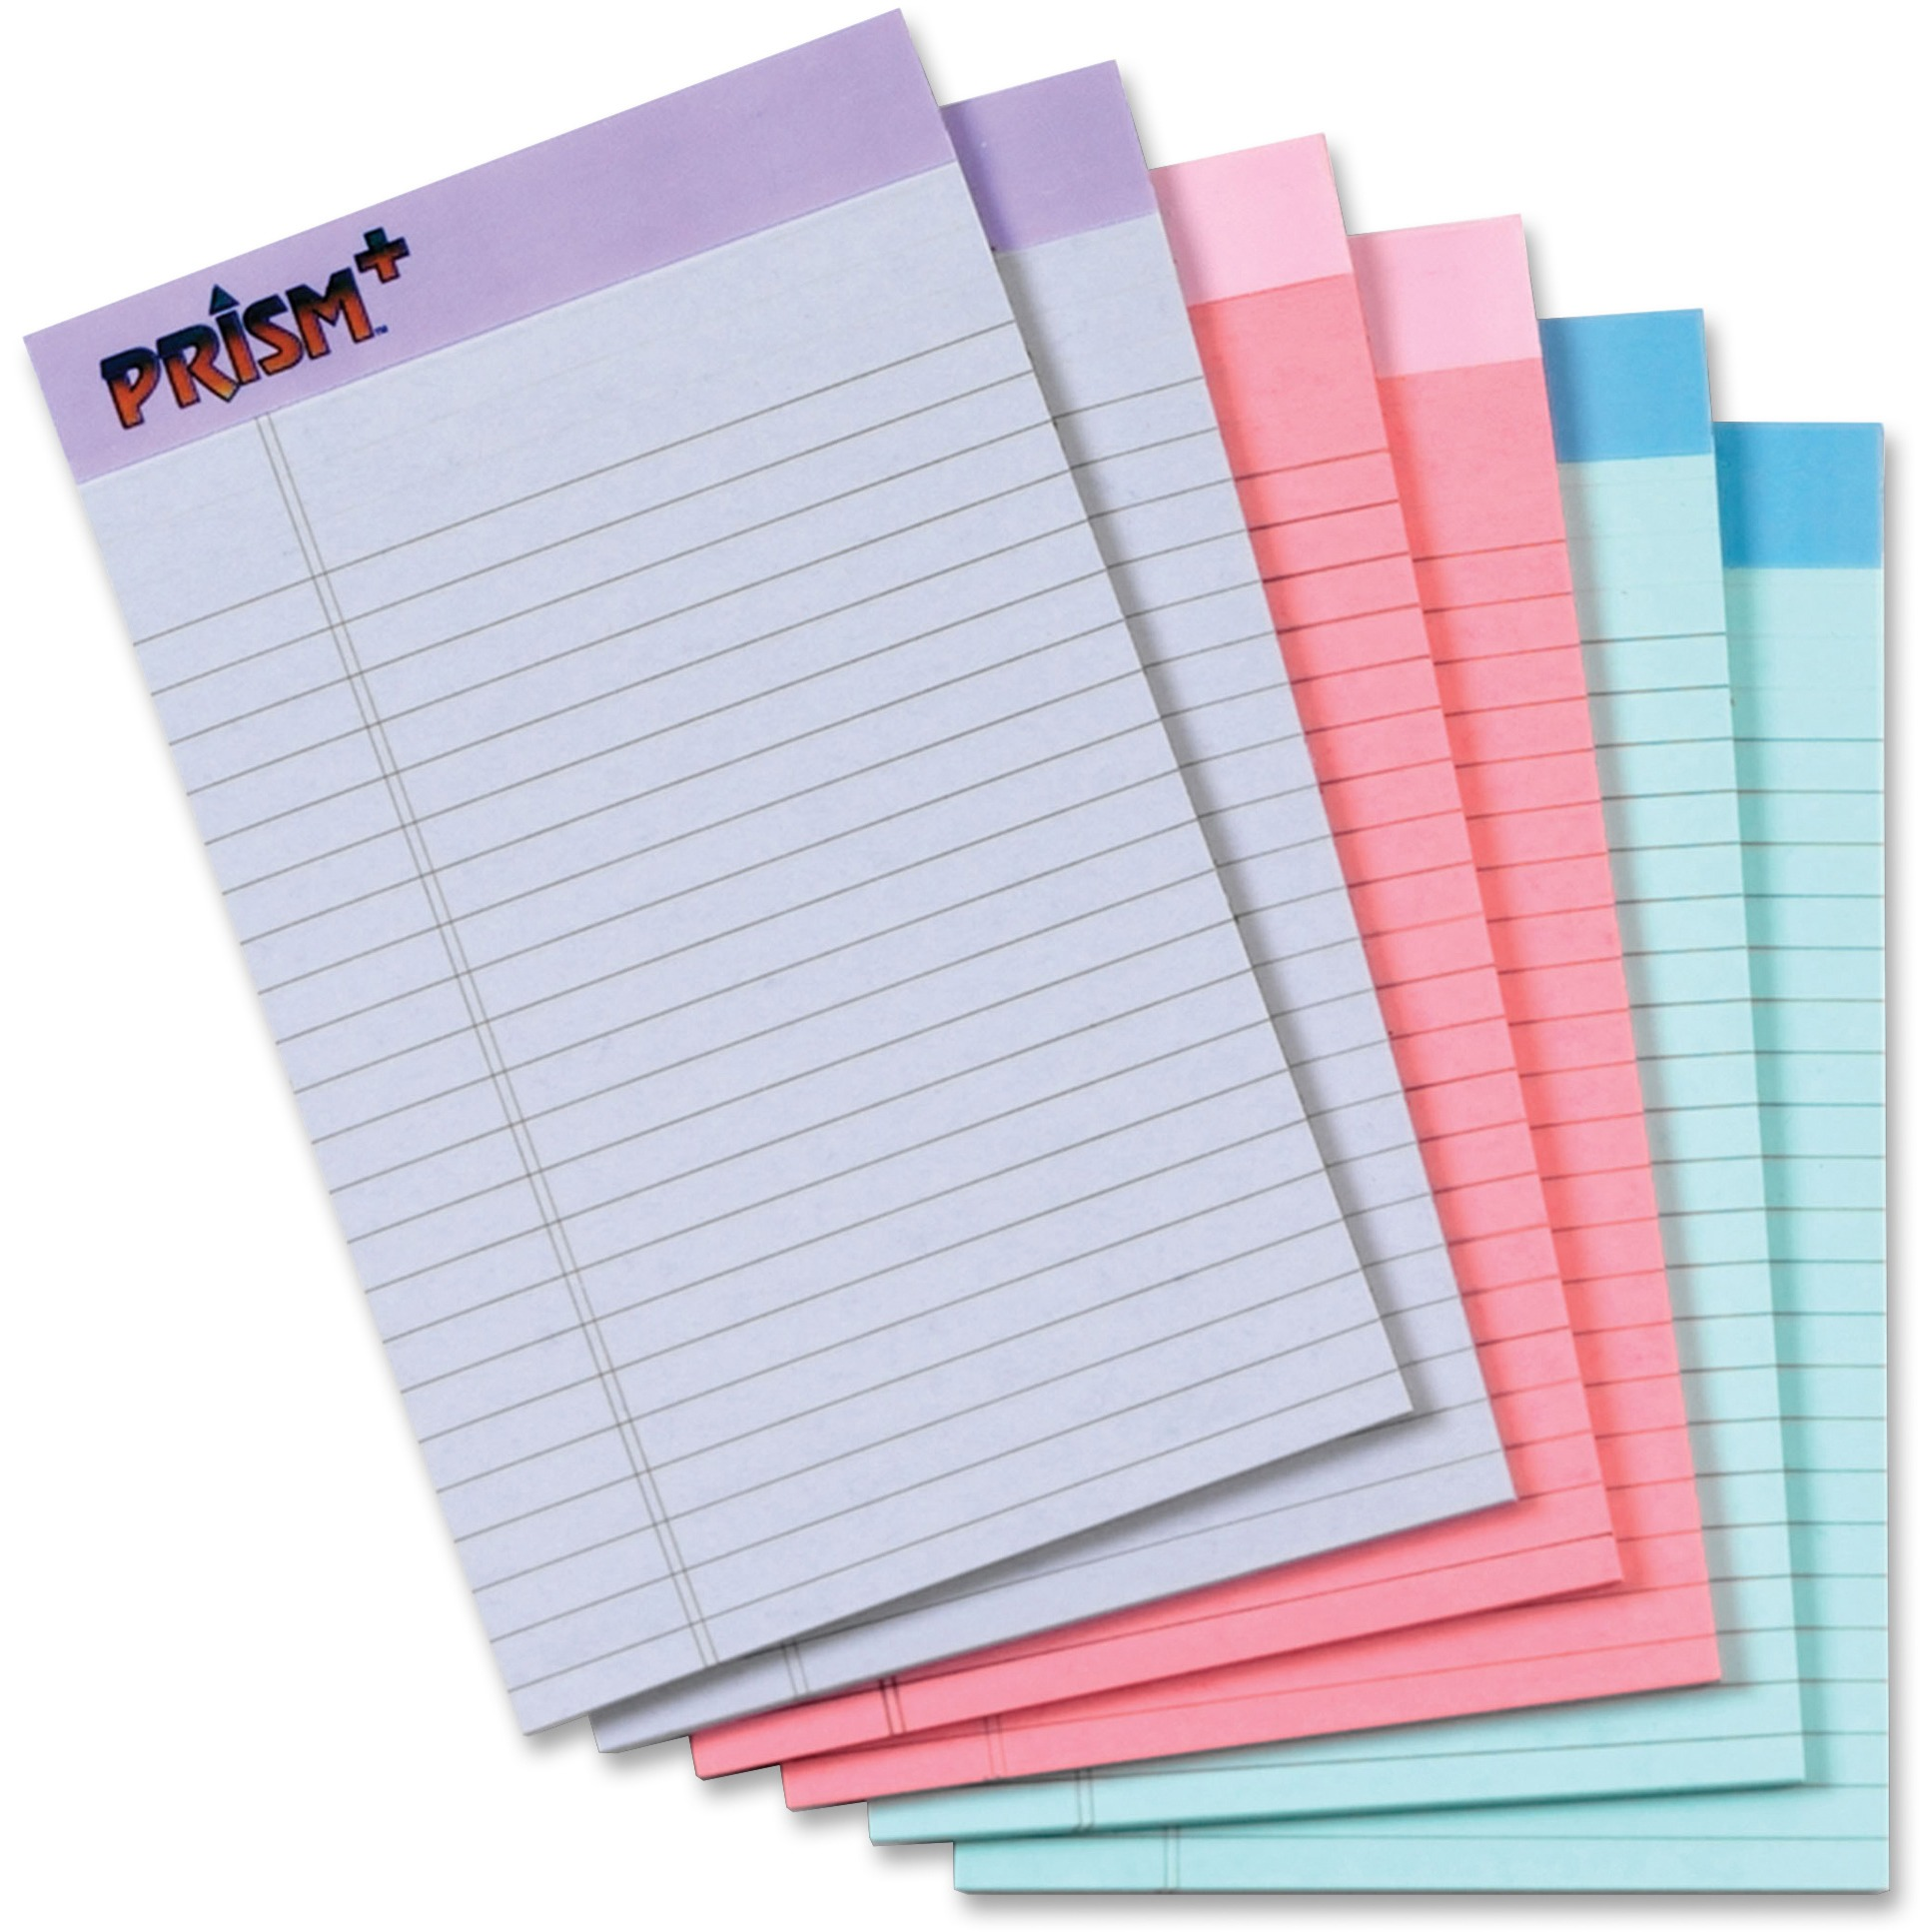 TOPS Prism Plus Legal Pads - Jr.Legal, 6 / Pack (Quantity)